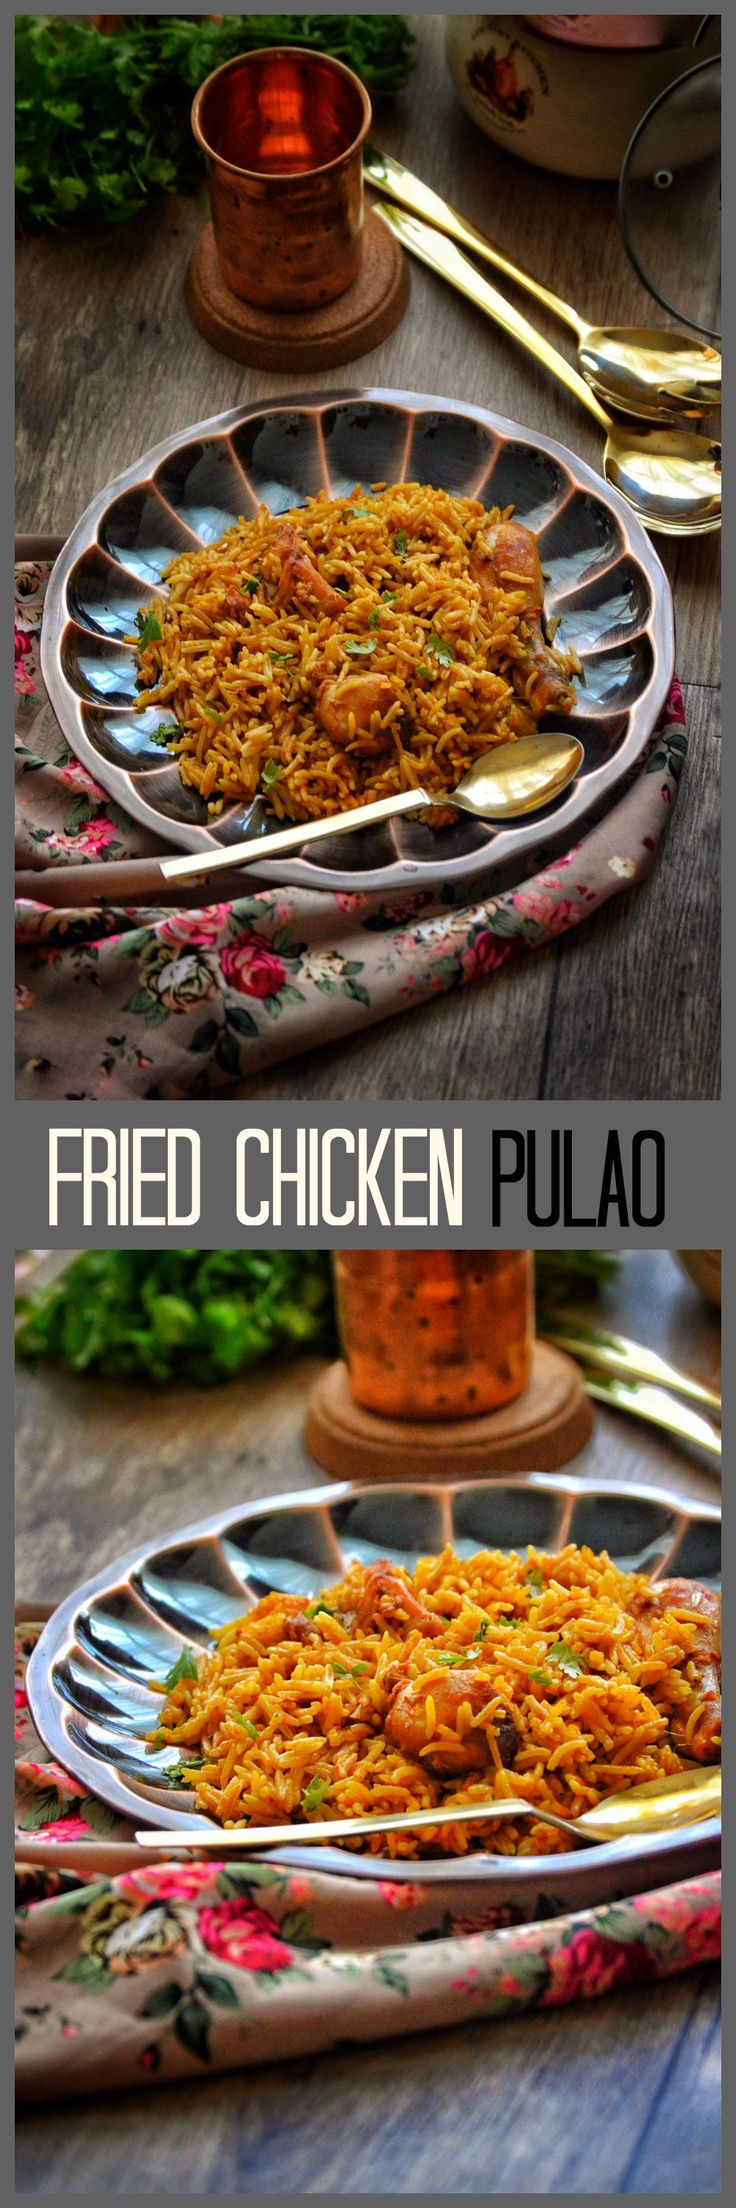 Fried chicken pulao is a one pan chicken and rice dish with amazing Indian flavors.